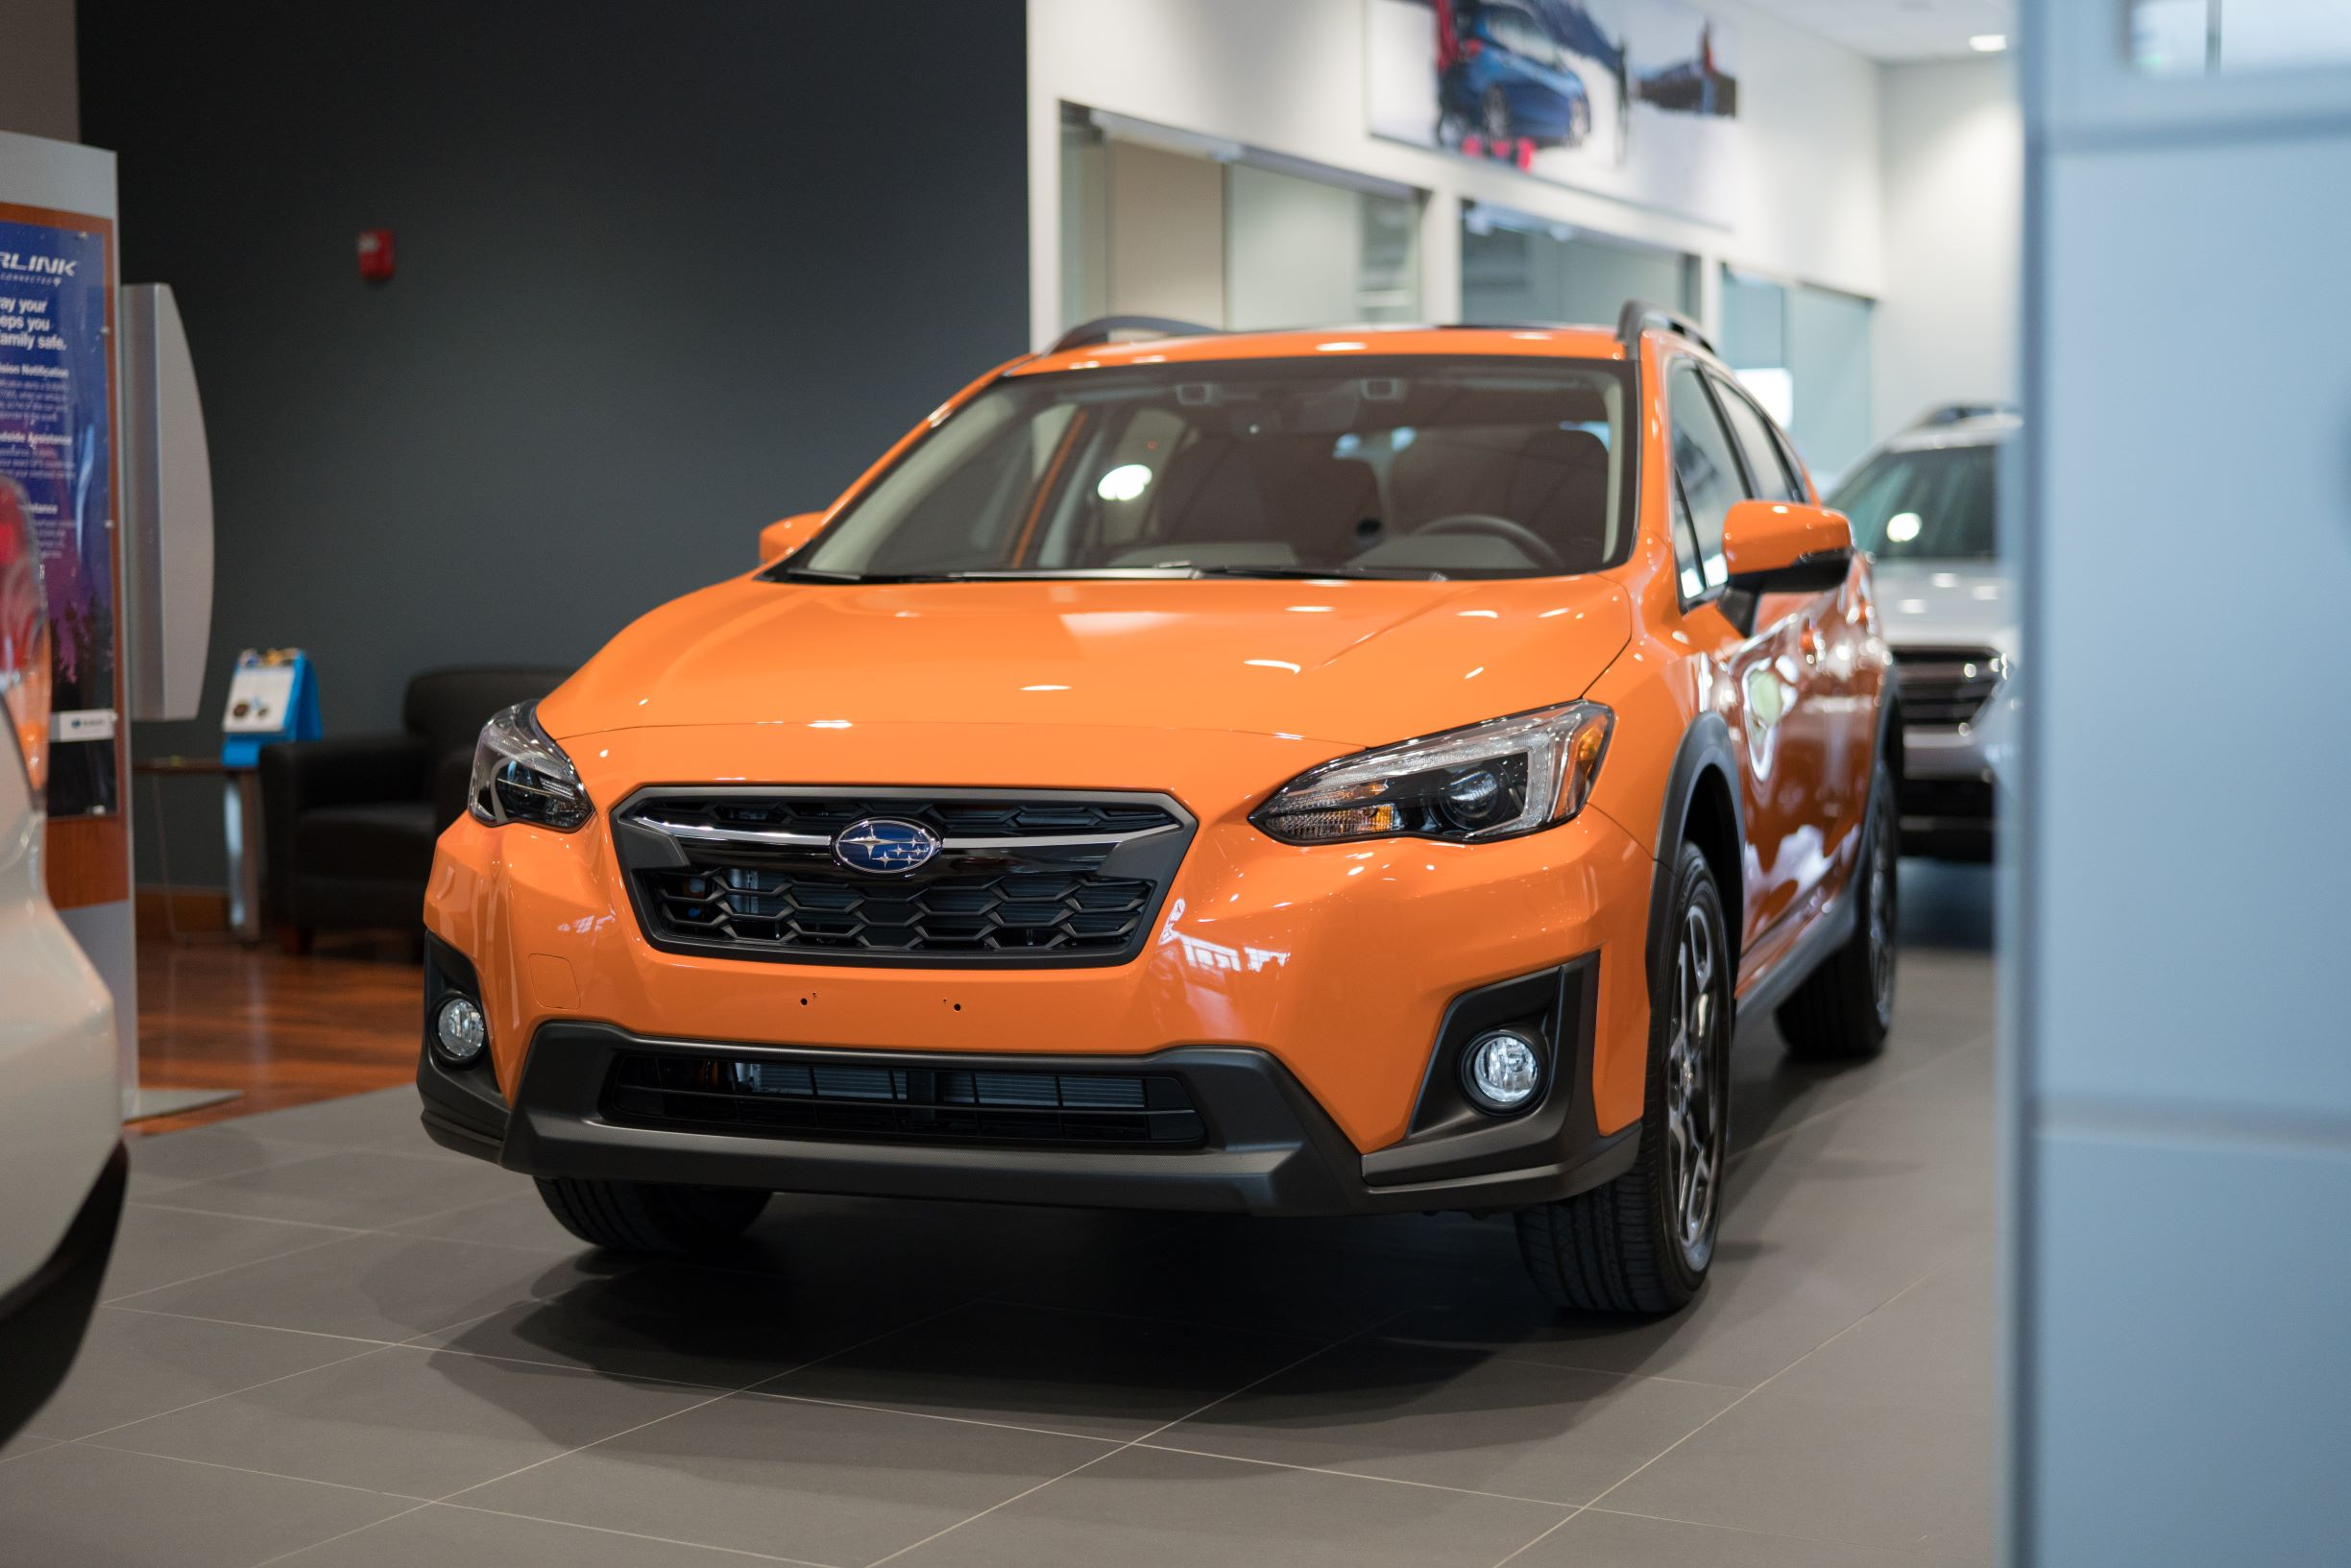 Subaru Dealer In Hunt Valley >> Cockeysville Subaru Dealer | AutoNation Subaru Hunt Valley